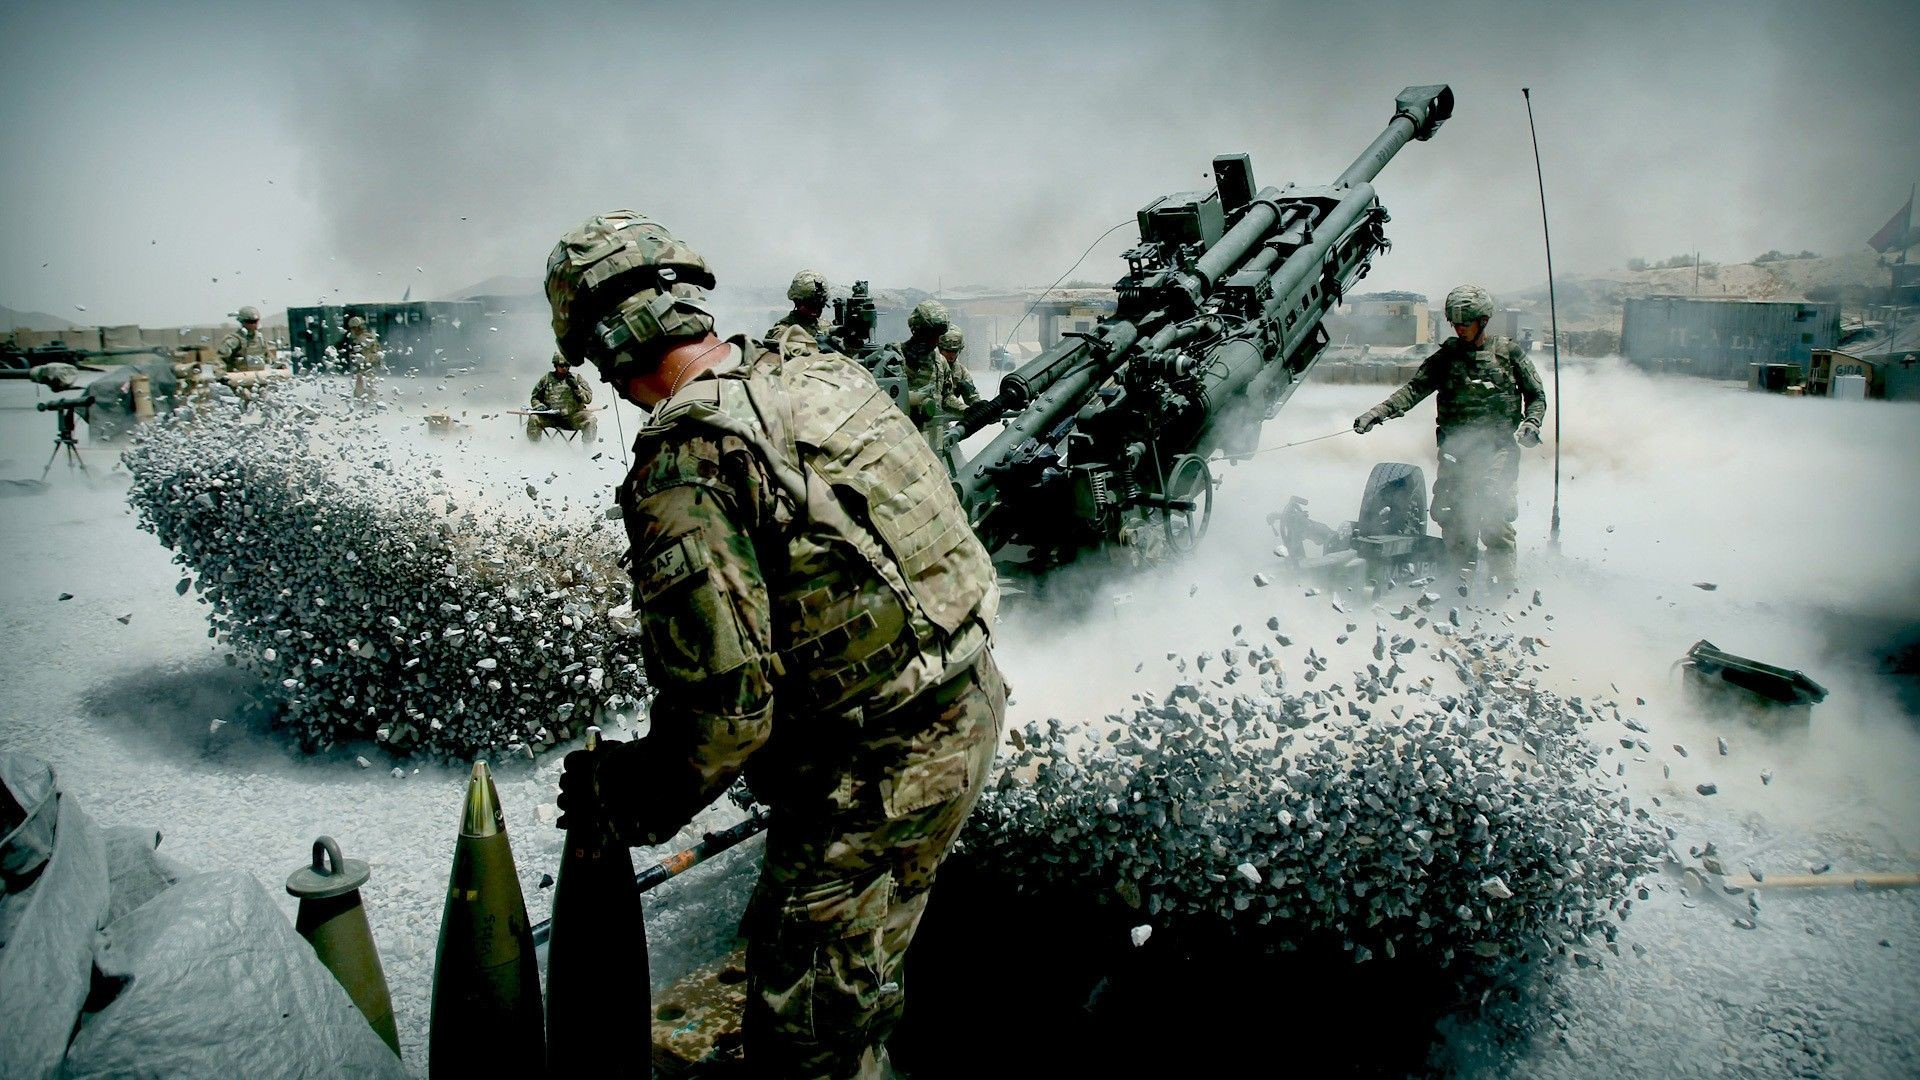 Military Wallpapers Hd 1920x1080 63 Images